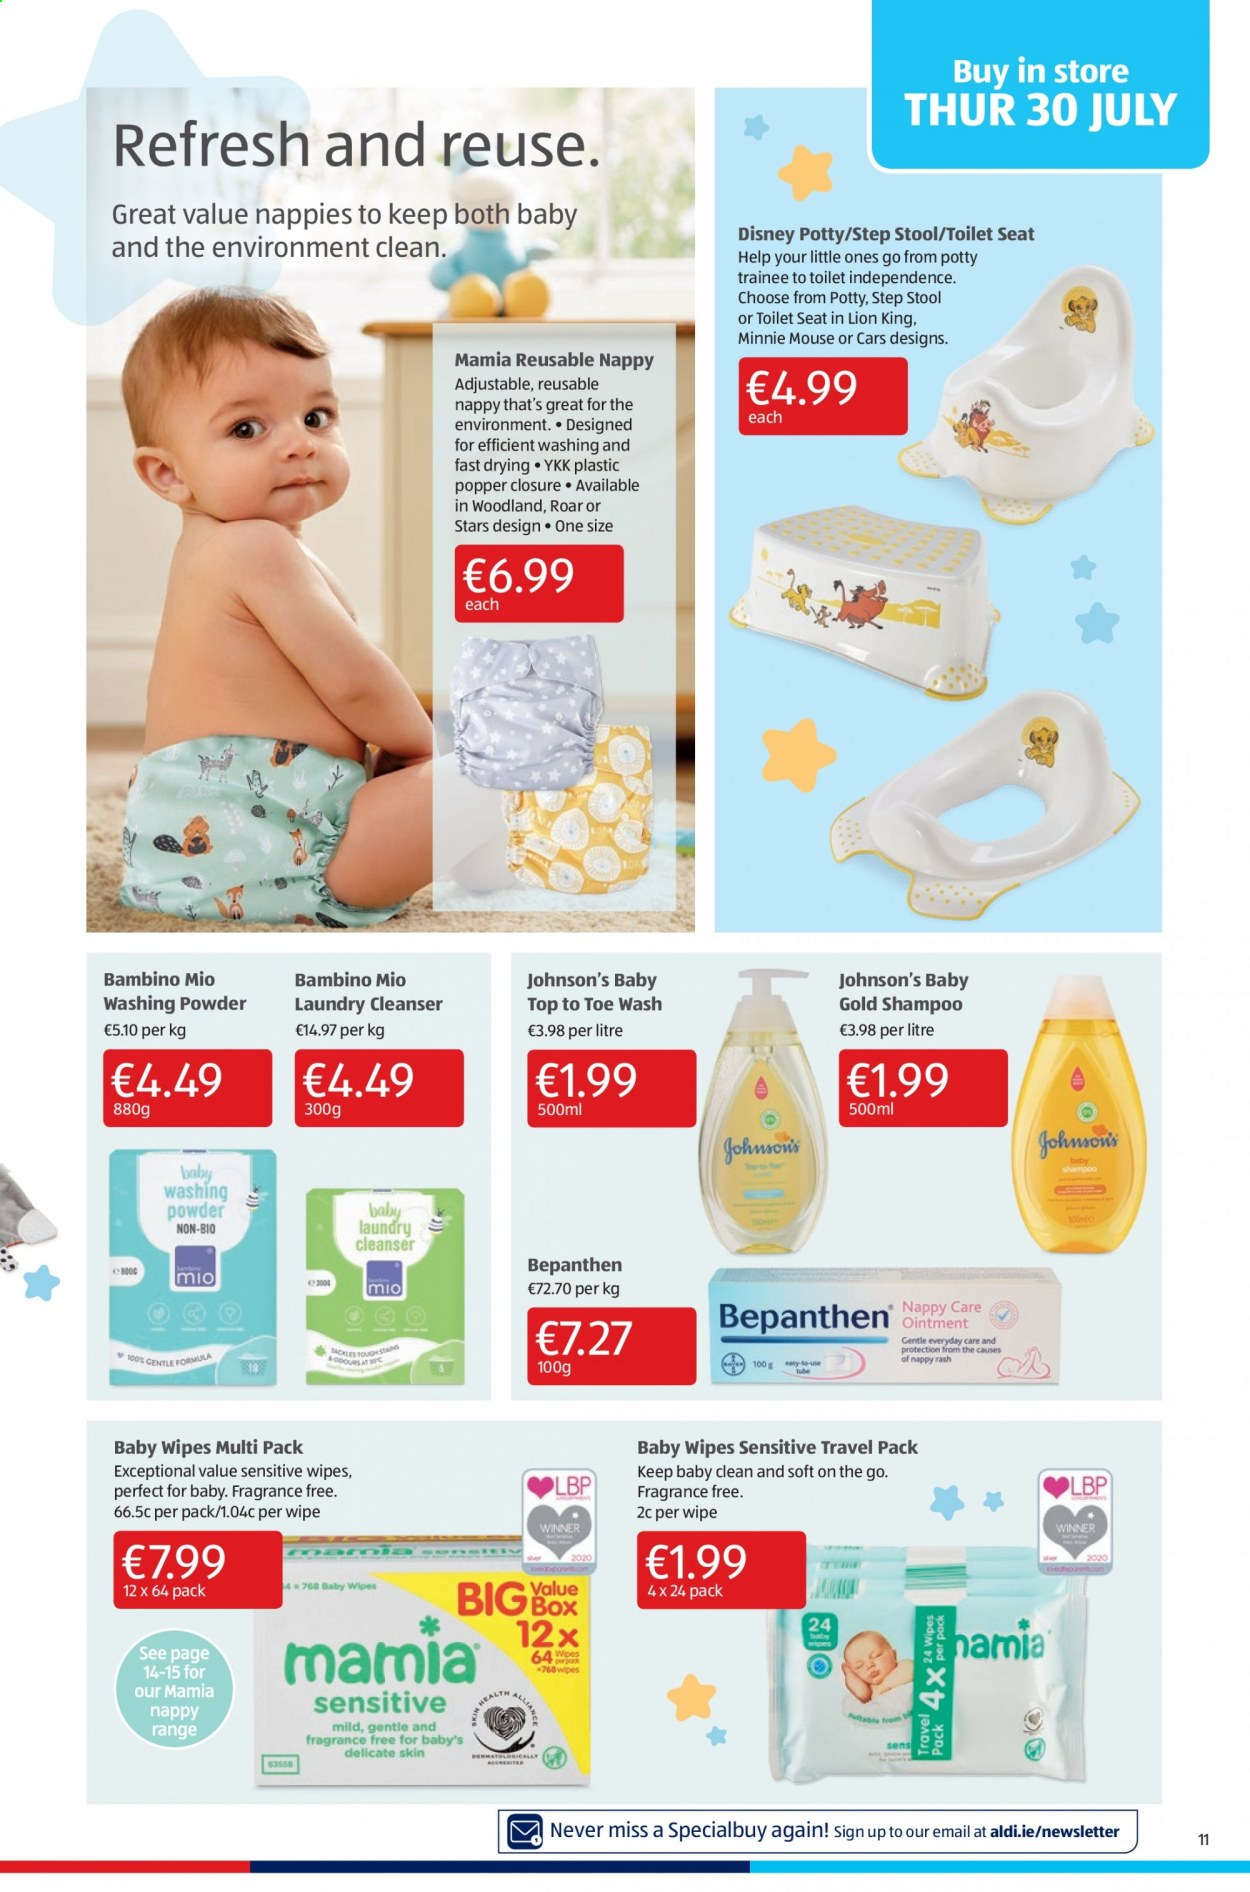 Aldi offer  - 30.7.2020 - 2.8.2020 - Sales products - cleanser, disney, fragrance, mickey, minnie mouse, mouse, shampoo, step stool, stool, toilet, wipes, popper, powder, baby wipes, minnie, washing powder, diapers, nappies. Page 11.